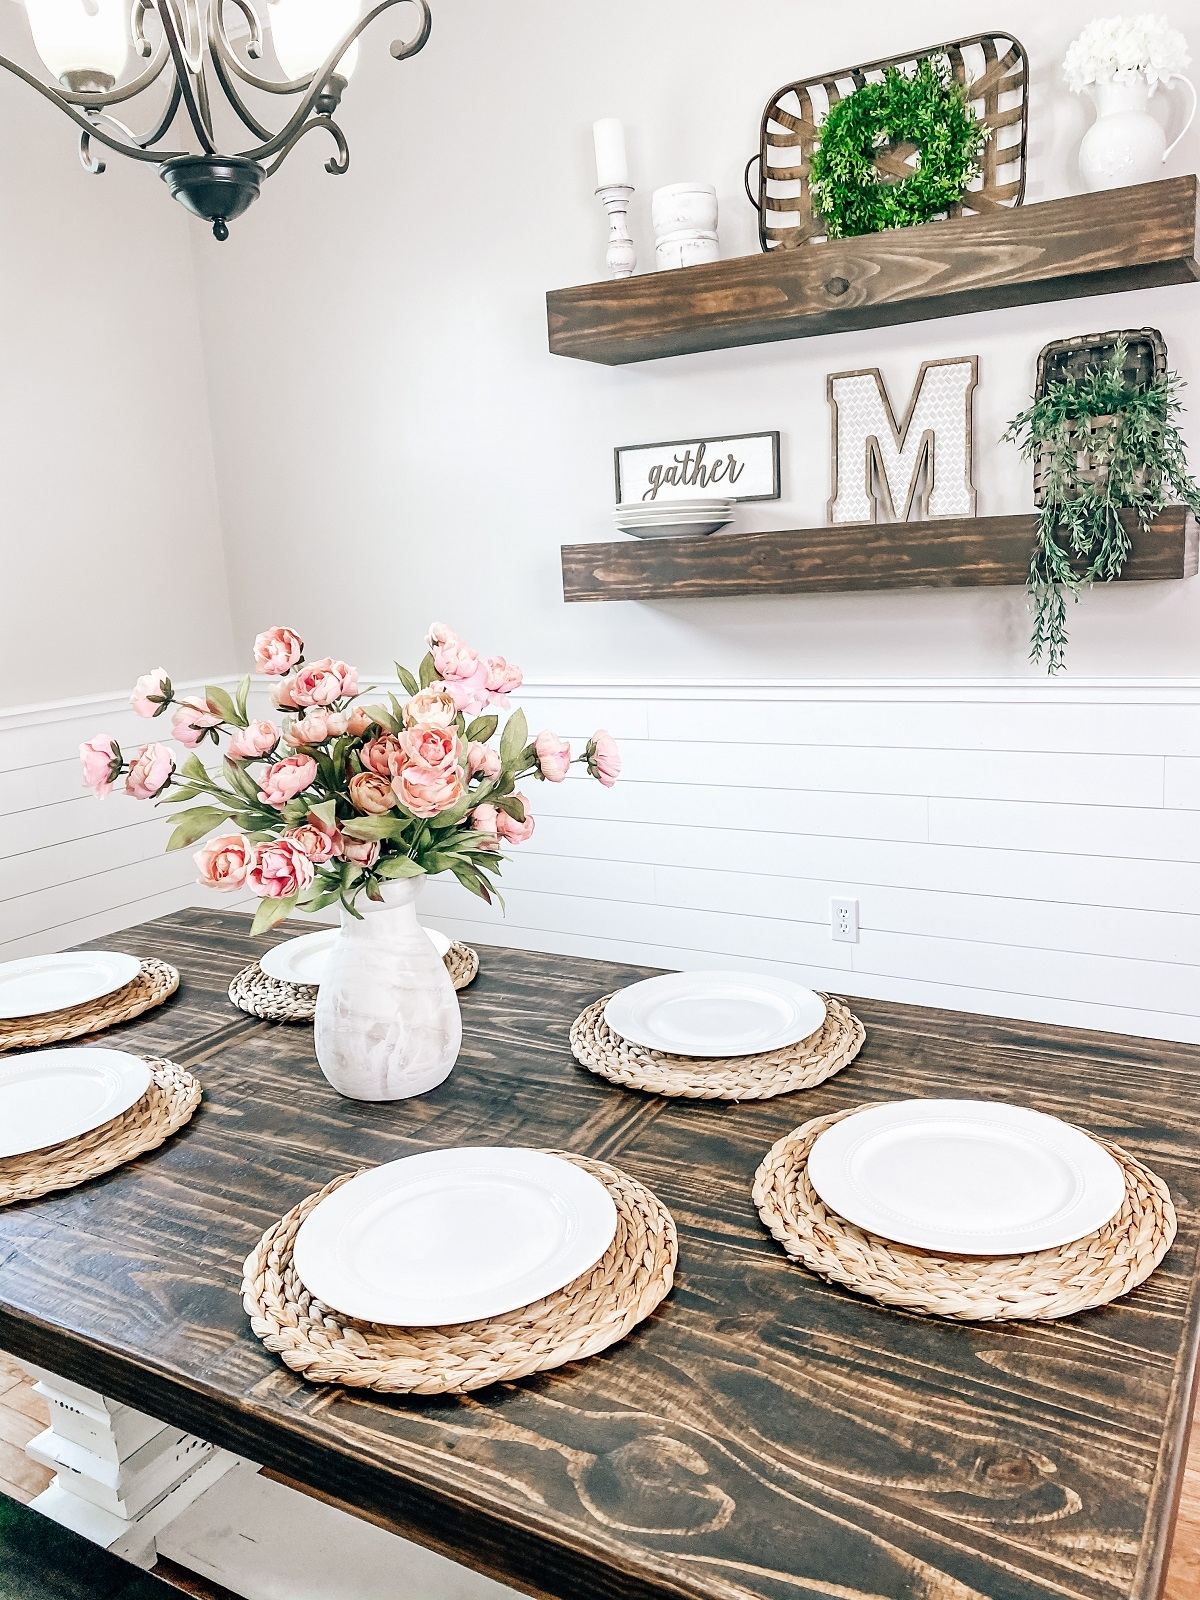 A table setting perfect for the fall with wall décor behind it